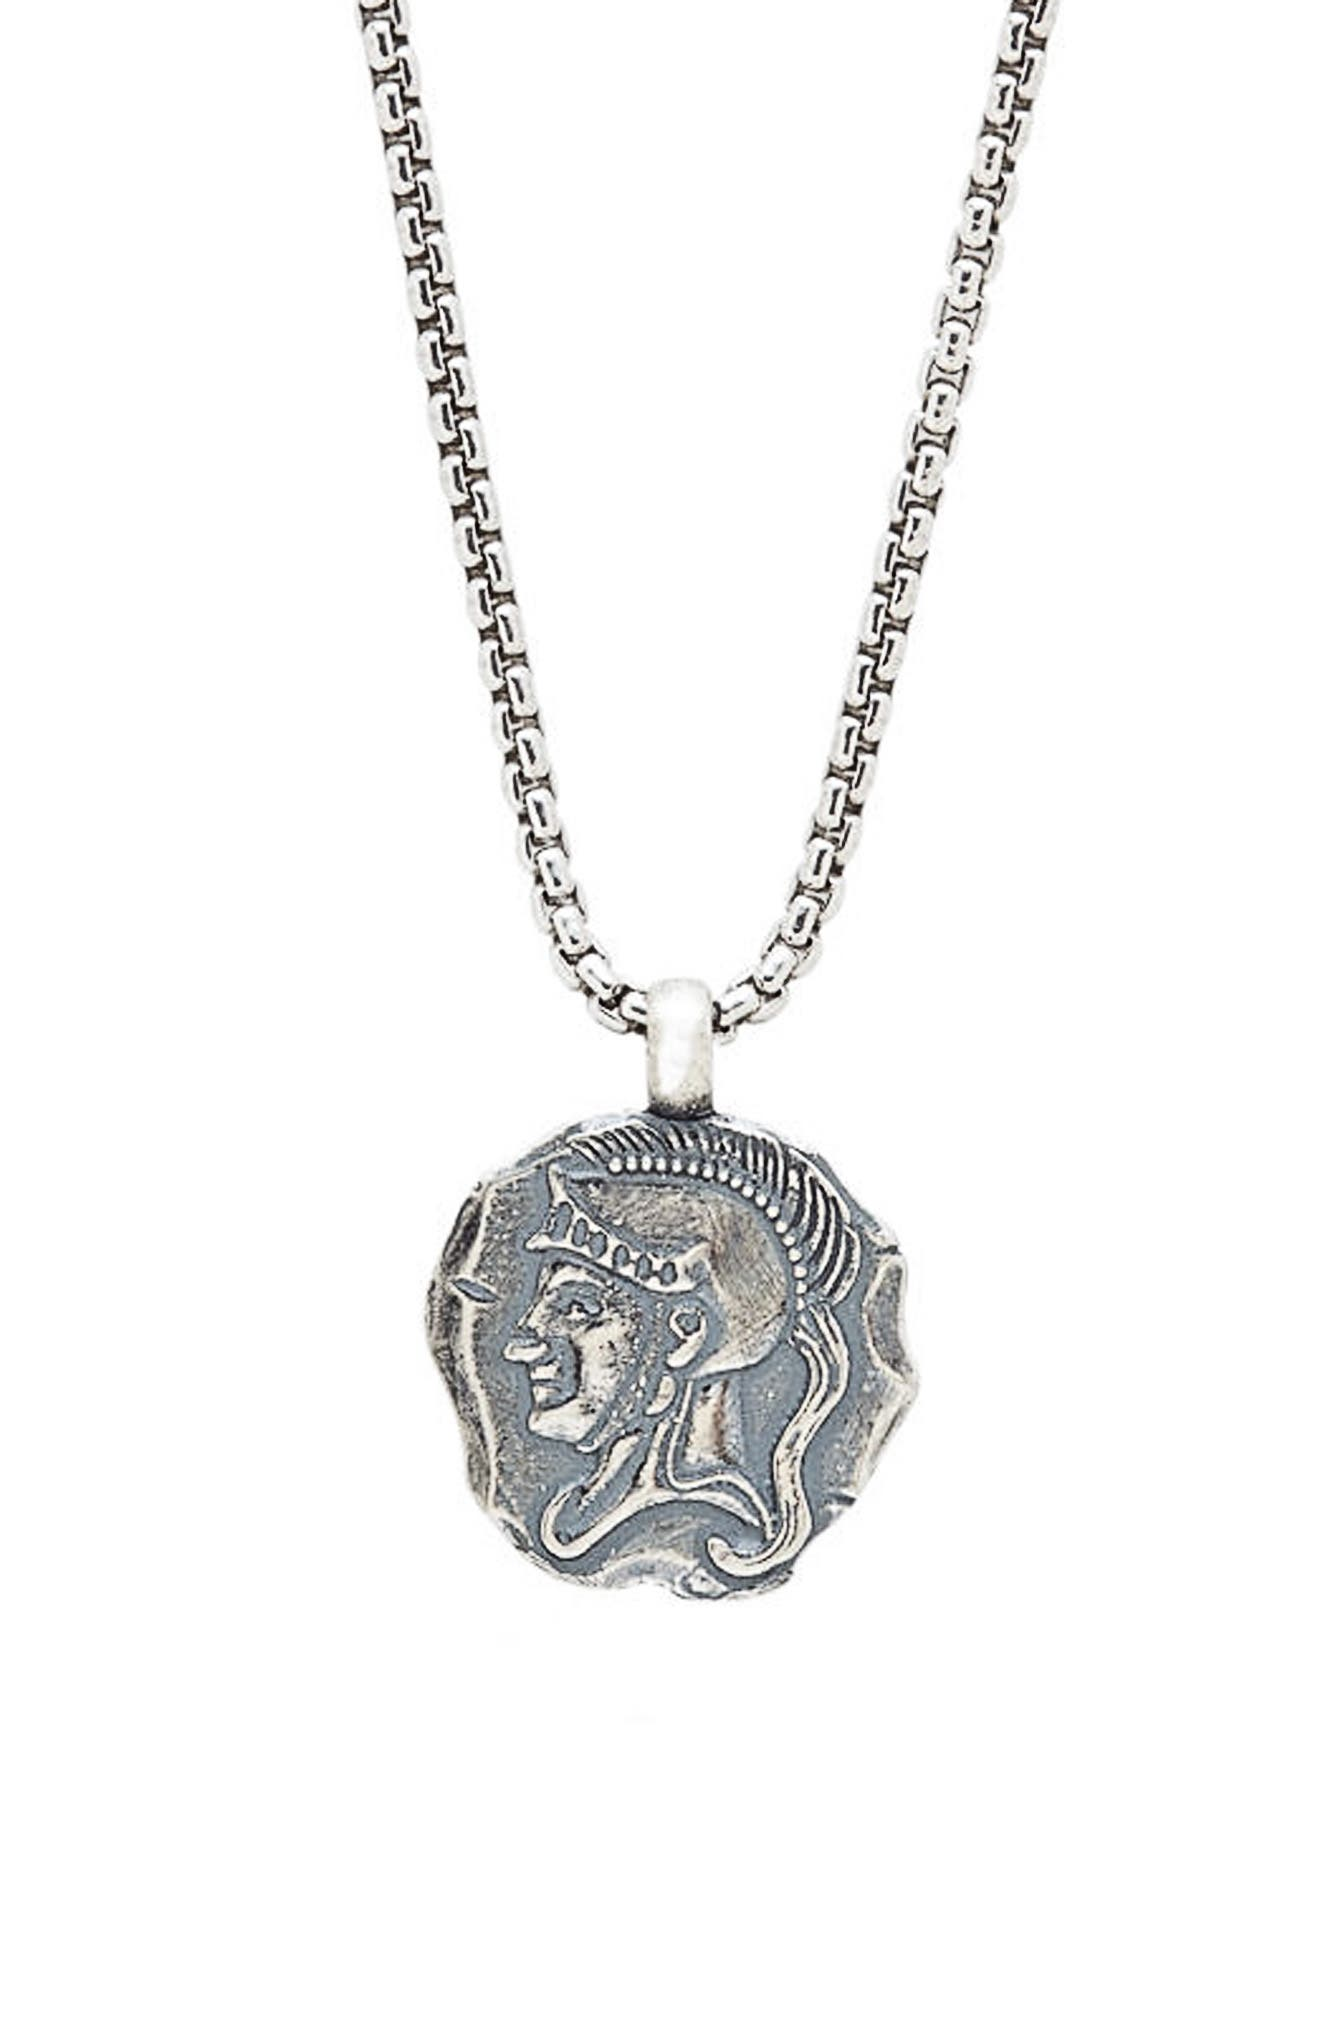 DEGS & SAL Spartan Pendant Necklace